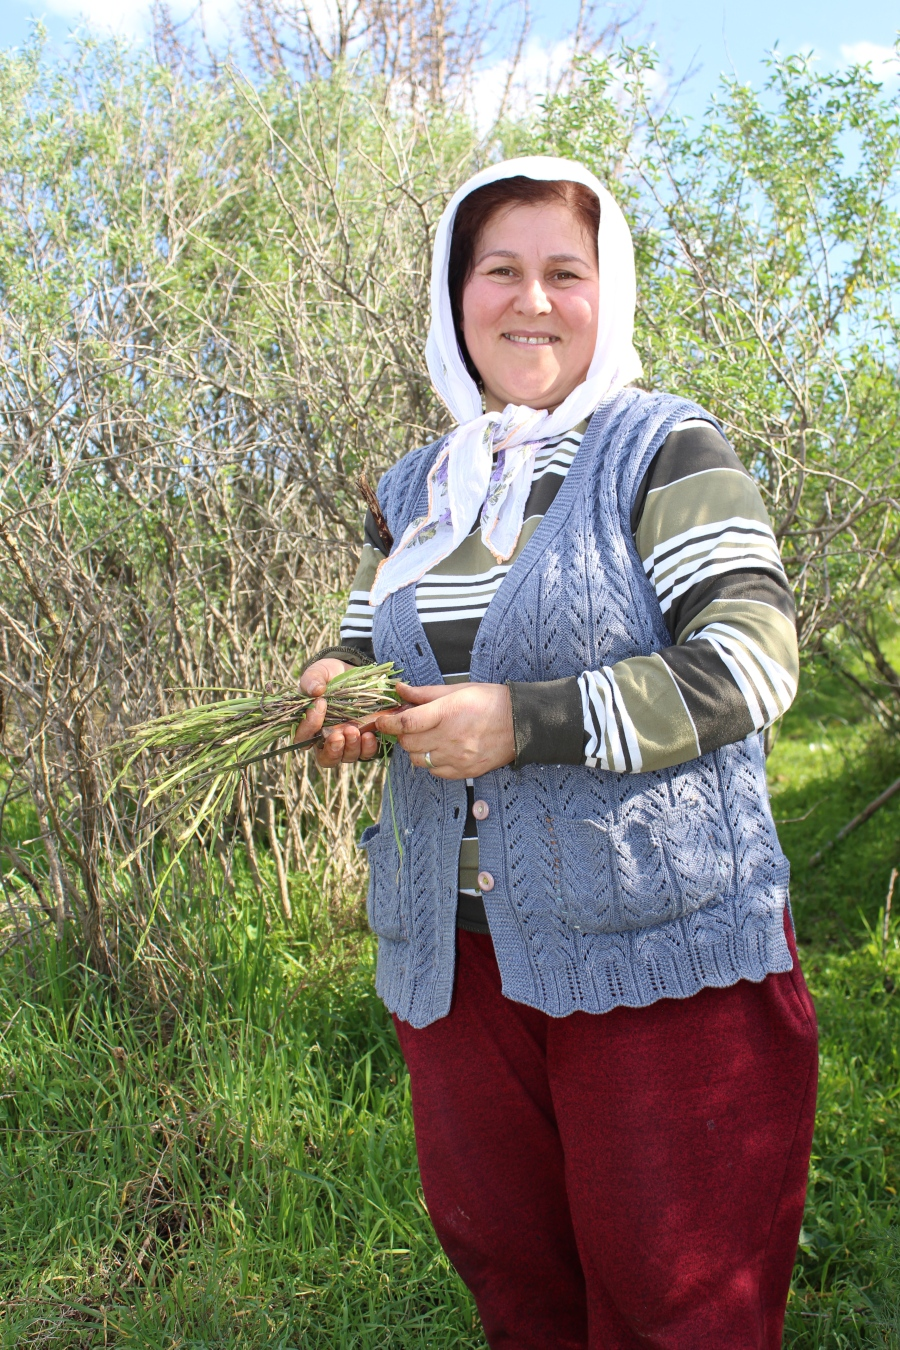 She was harvesting some plants when I asked her for directions to Ephesus.